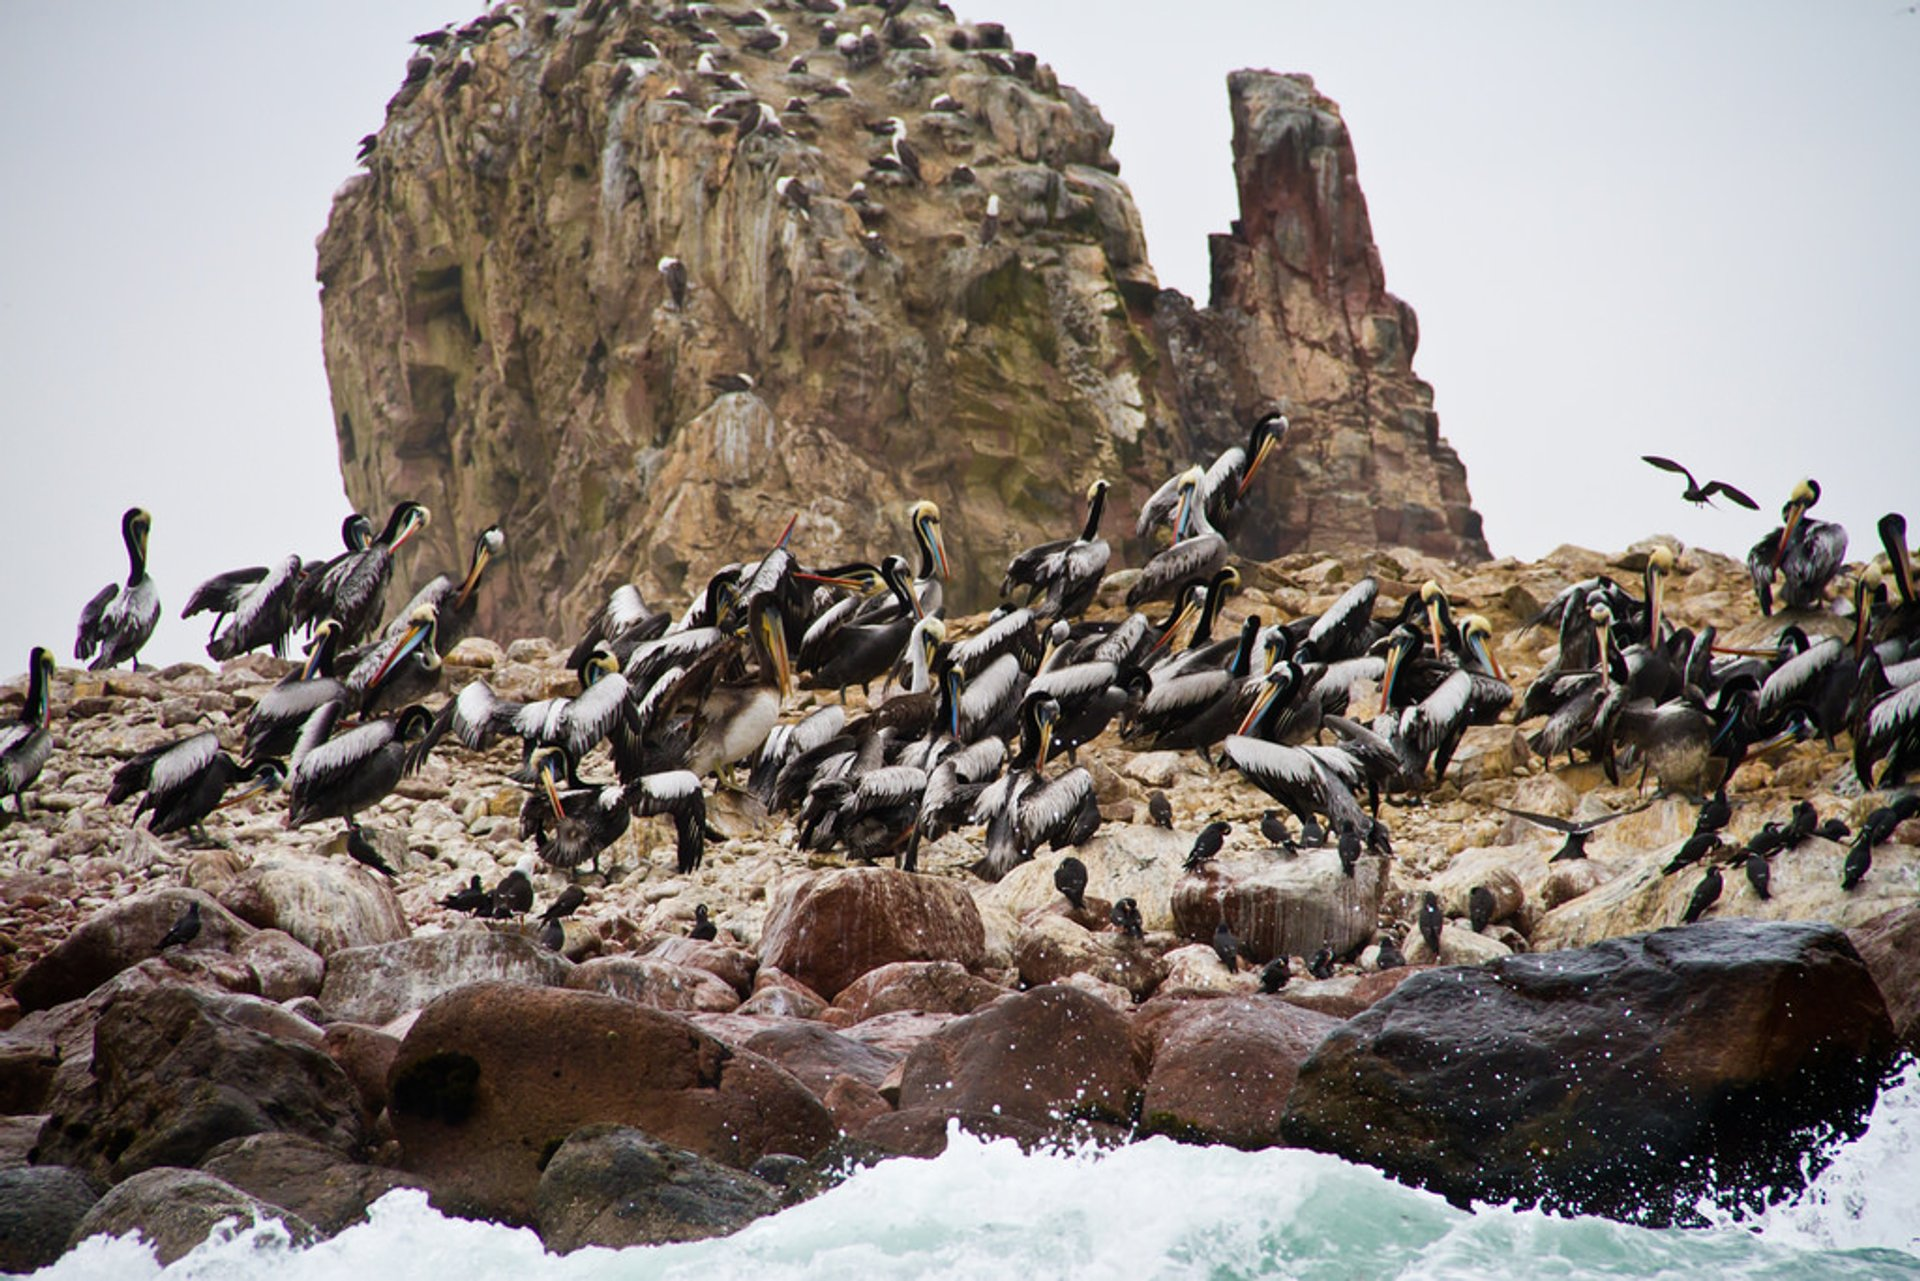 Best time for Marine Fauna of the Ballestas Islands in Peru